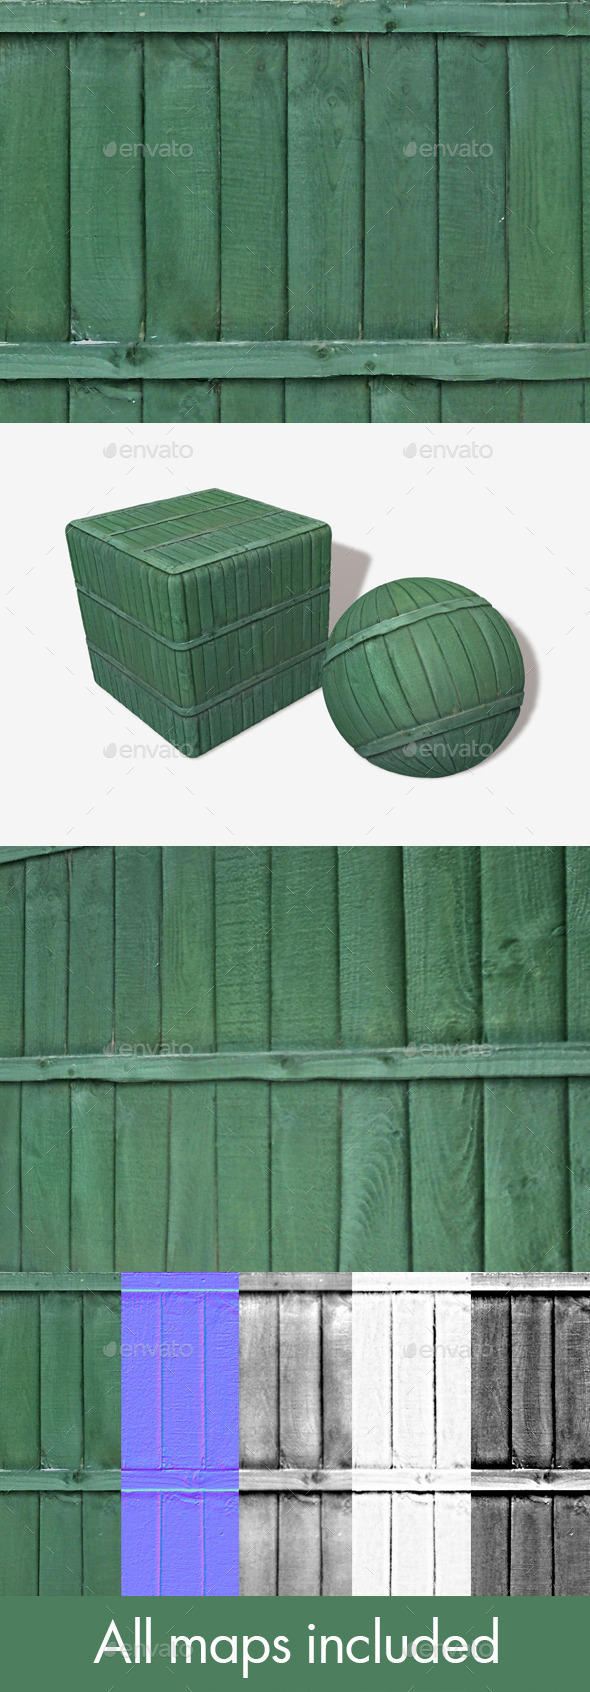 Green Wooden Panels Seamless Texture - 3DOcean Item for Sale